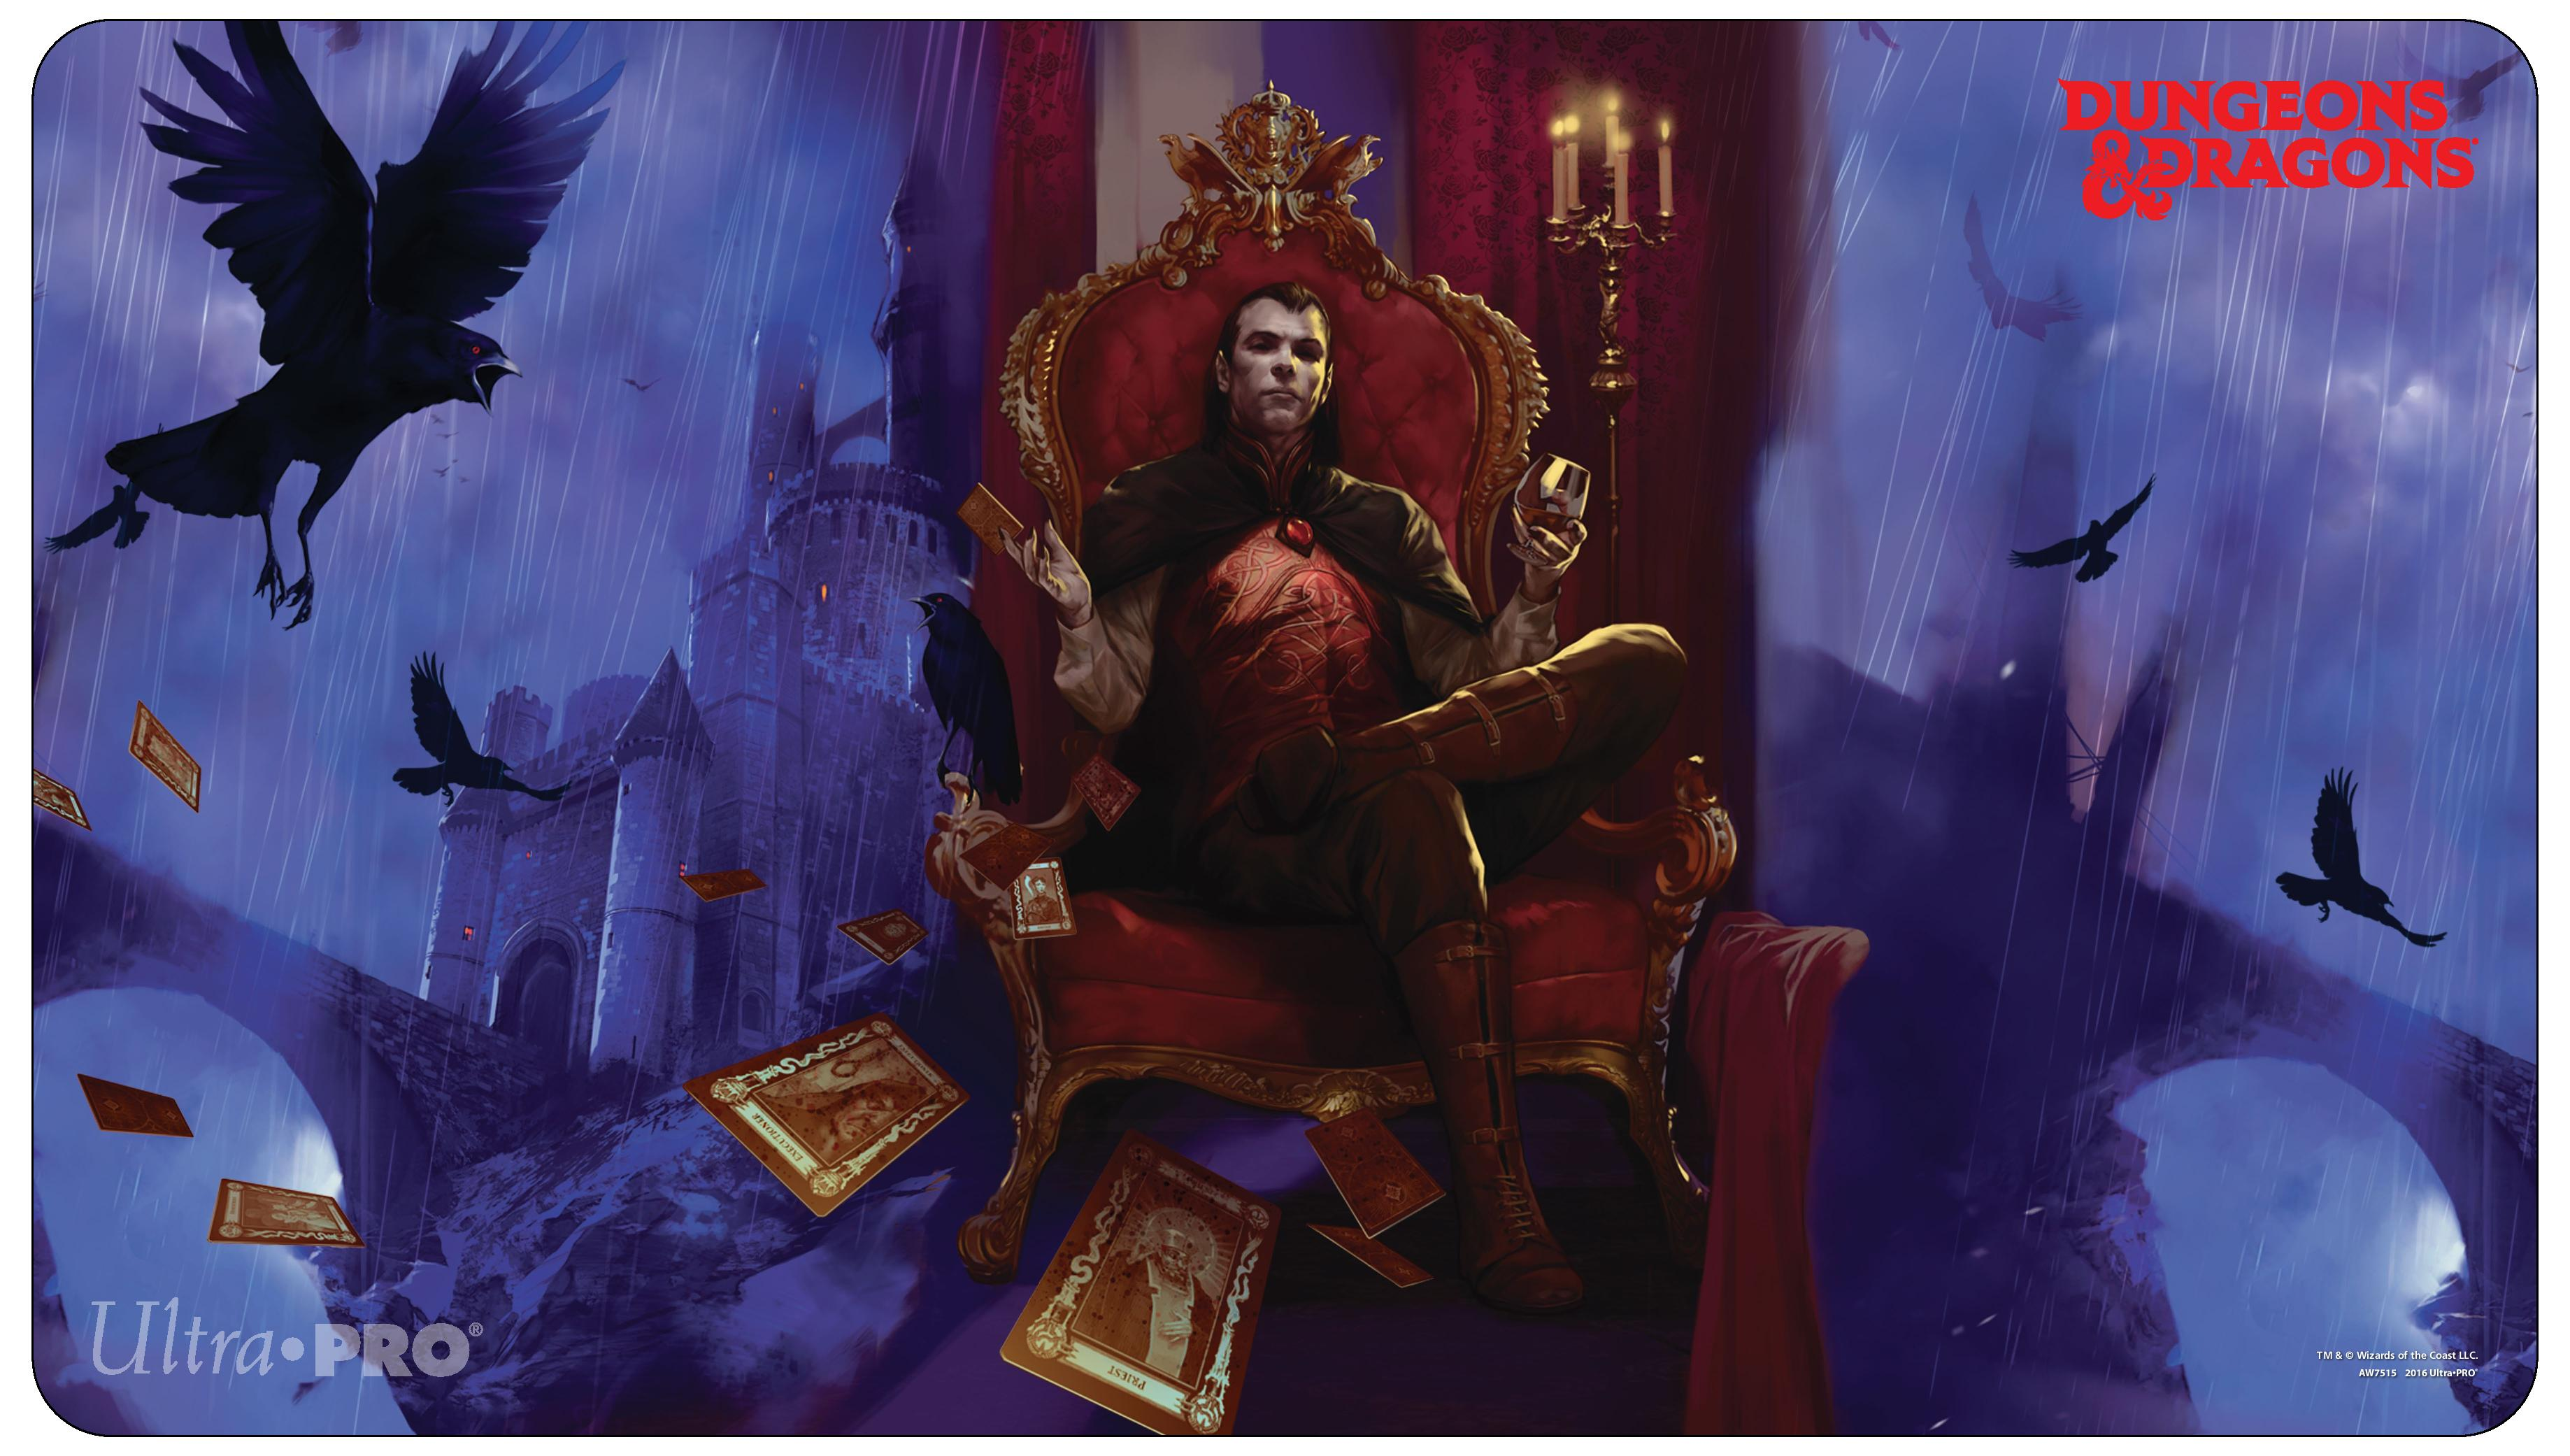 Ultra Pro - Dungeons and Dragons - Count Strahd von Zarovich Playmat